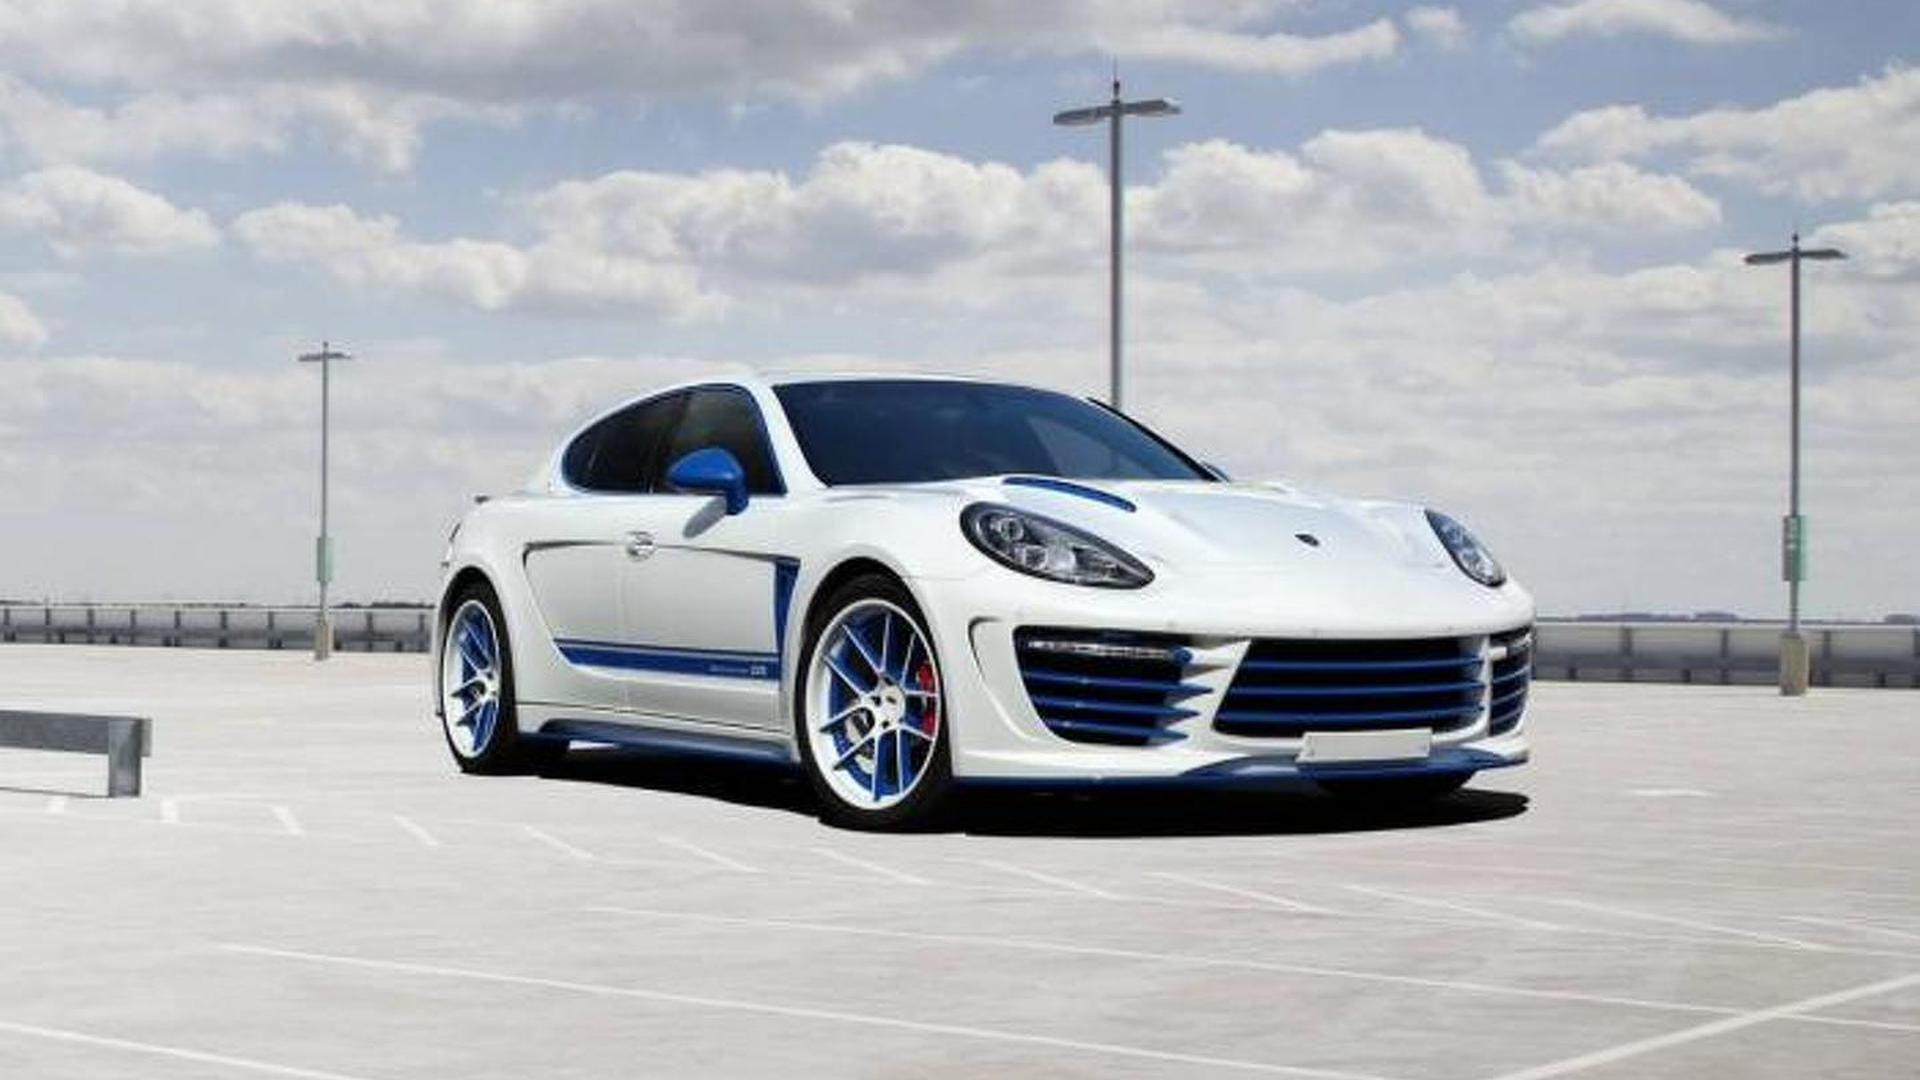 Тюнинг Porsche Panamera Stingray GTR Blue от TopCar